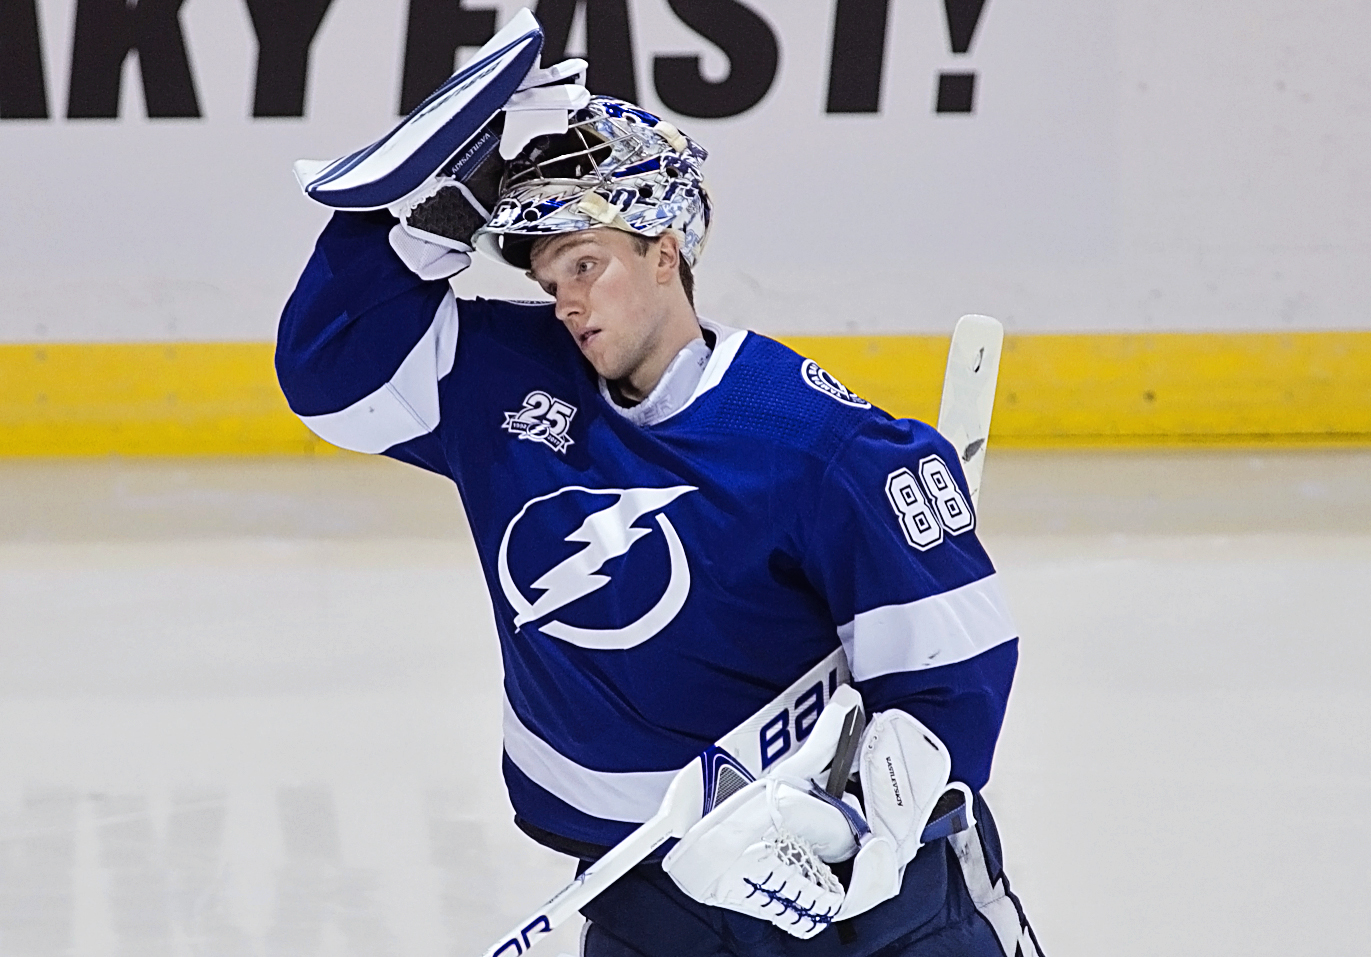 Vasilevskiy stopped 27 of 29 shots for the win./CARMEN MANDATO